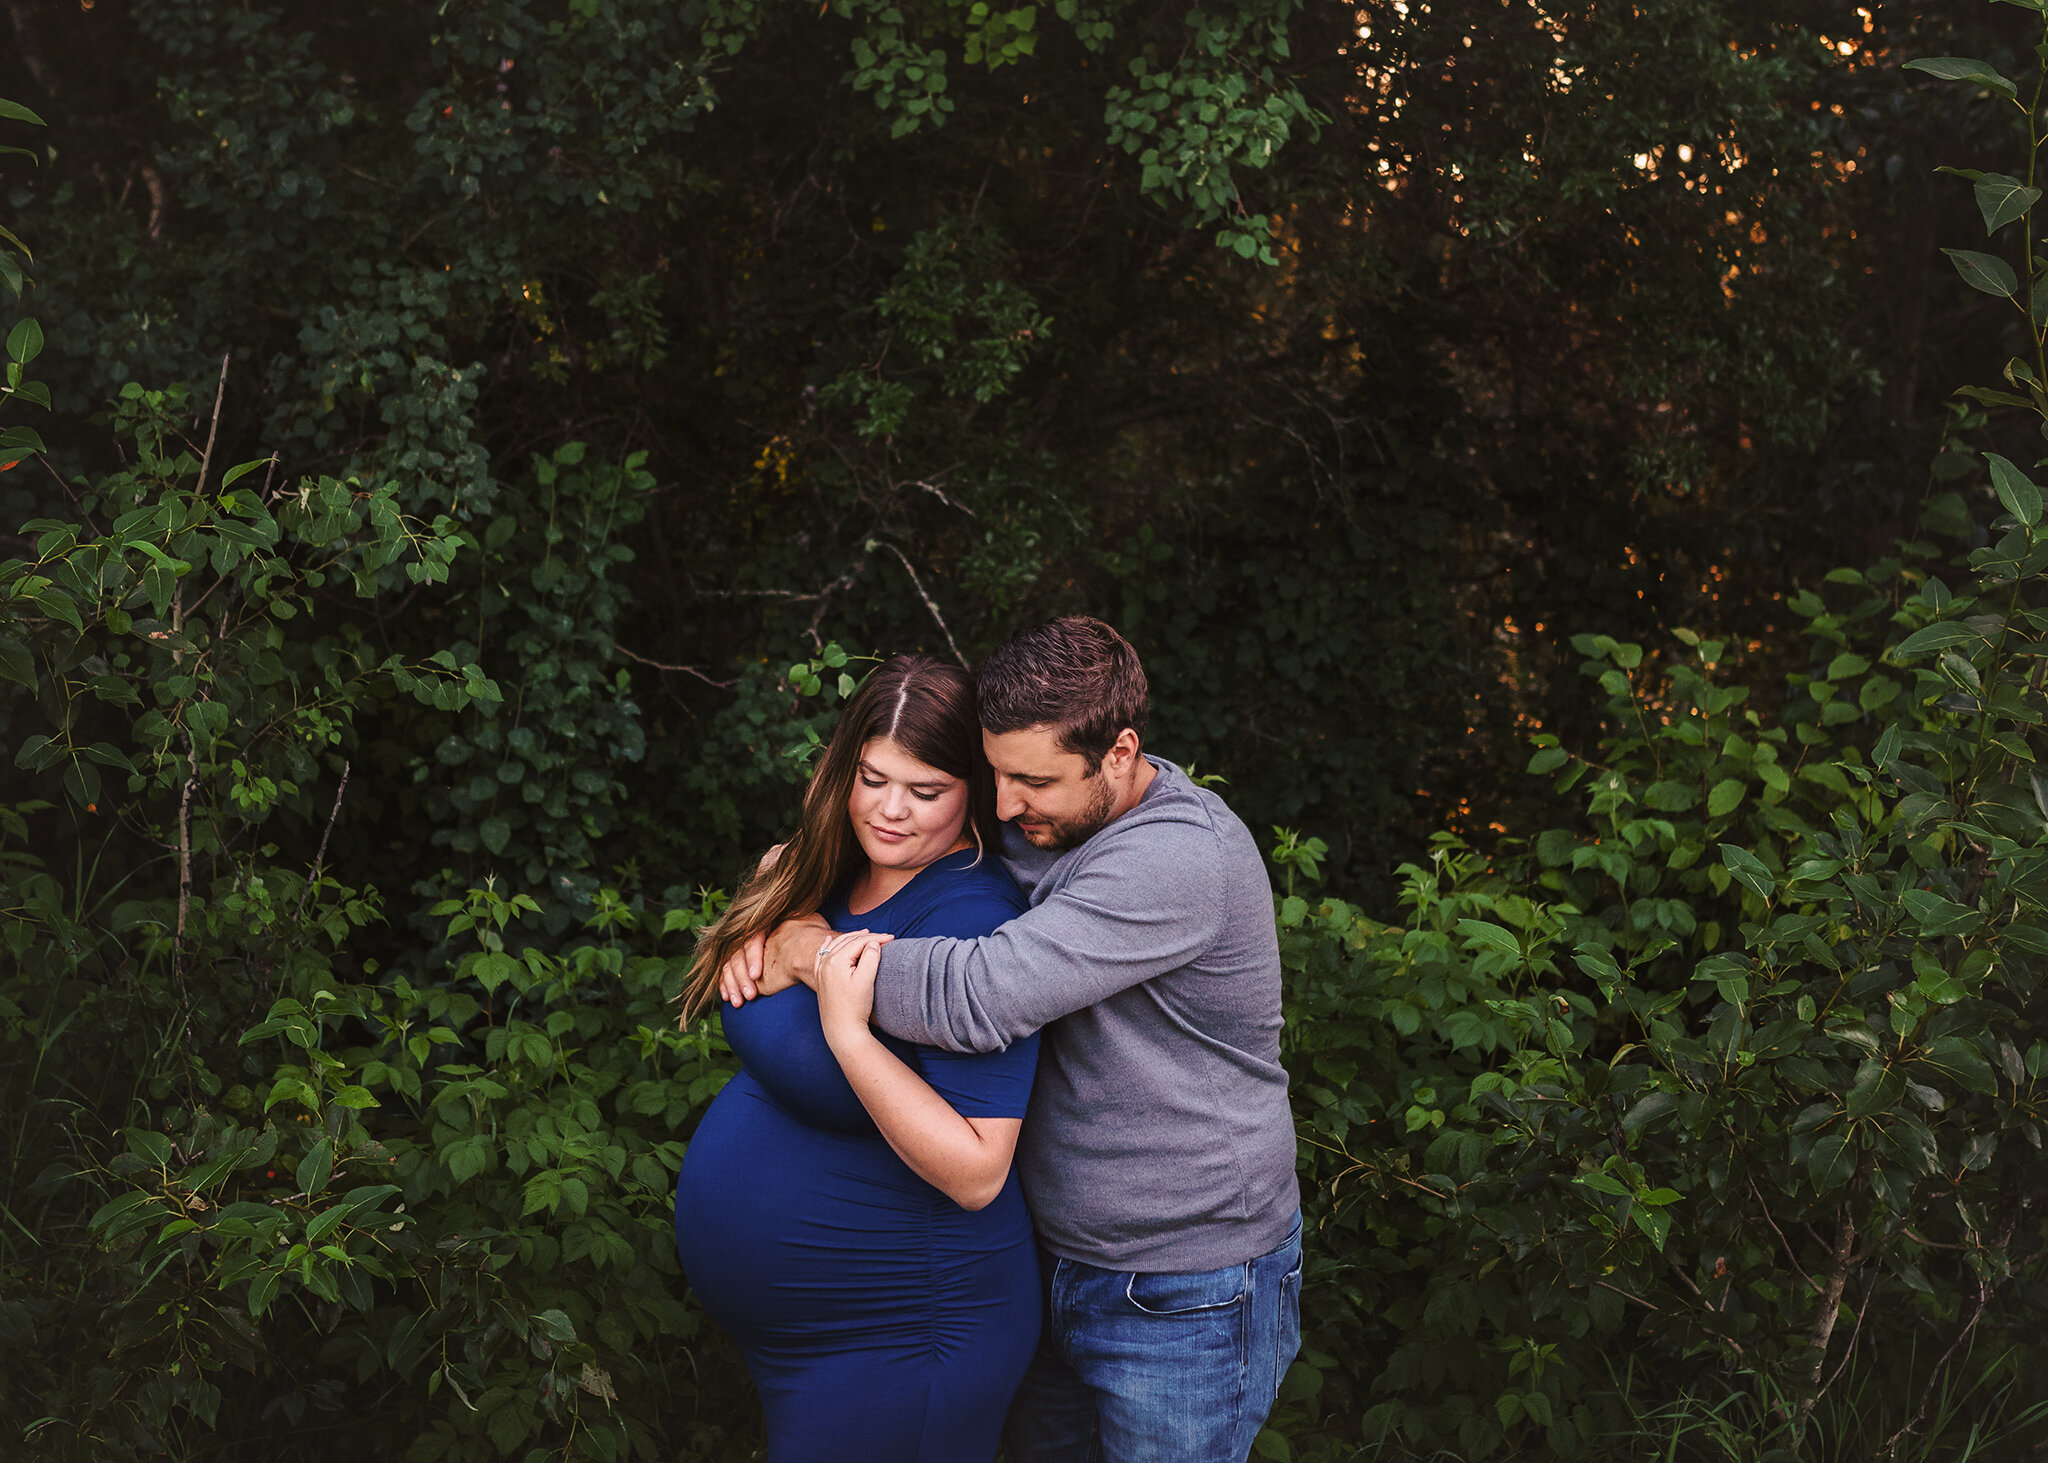 Edmonton Maternity and Newborn Photographer_Baby Bennett M 6.jpg